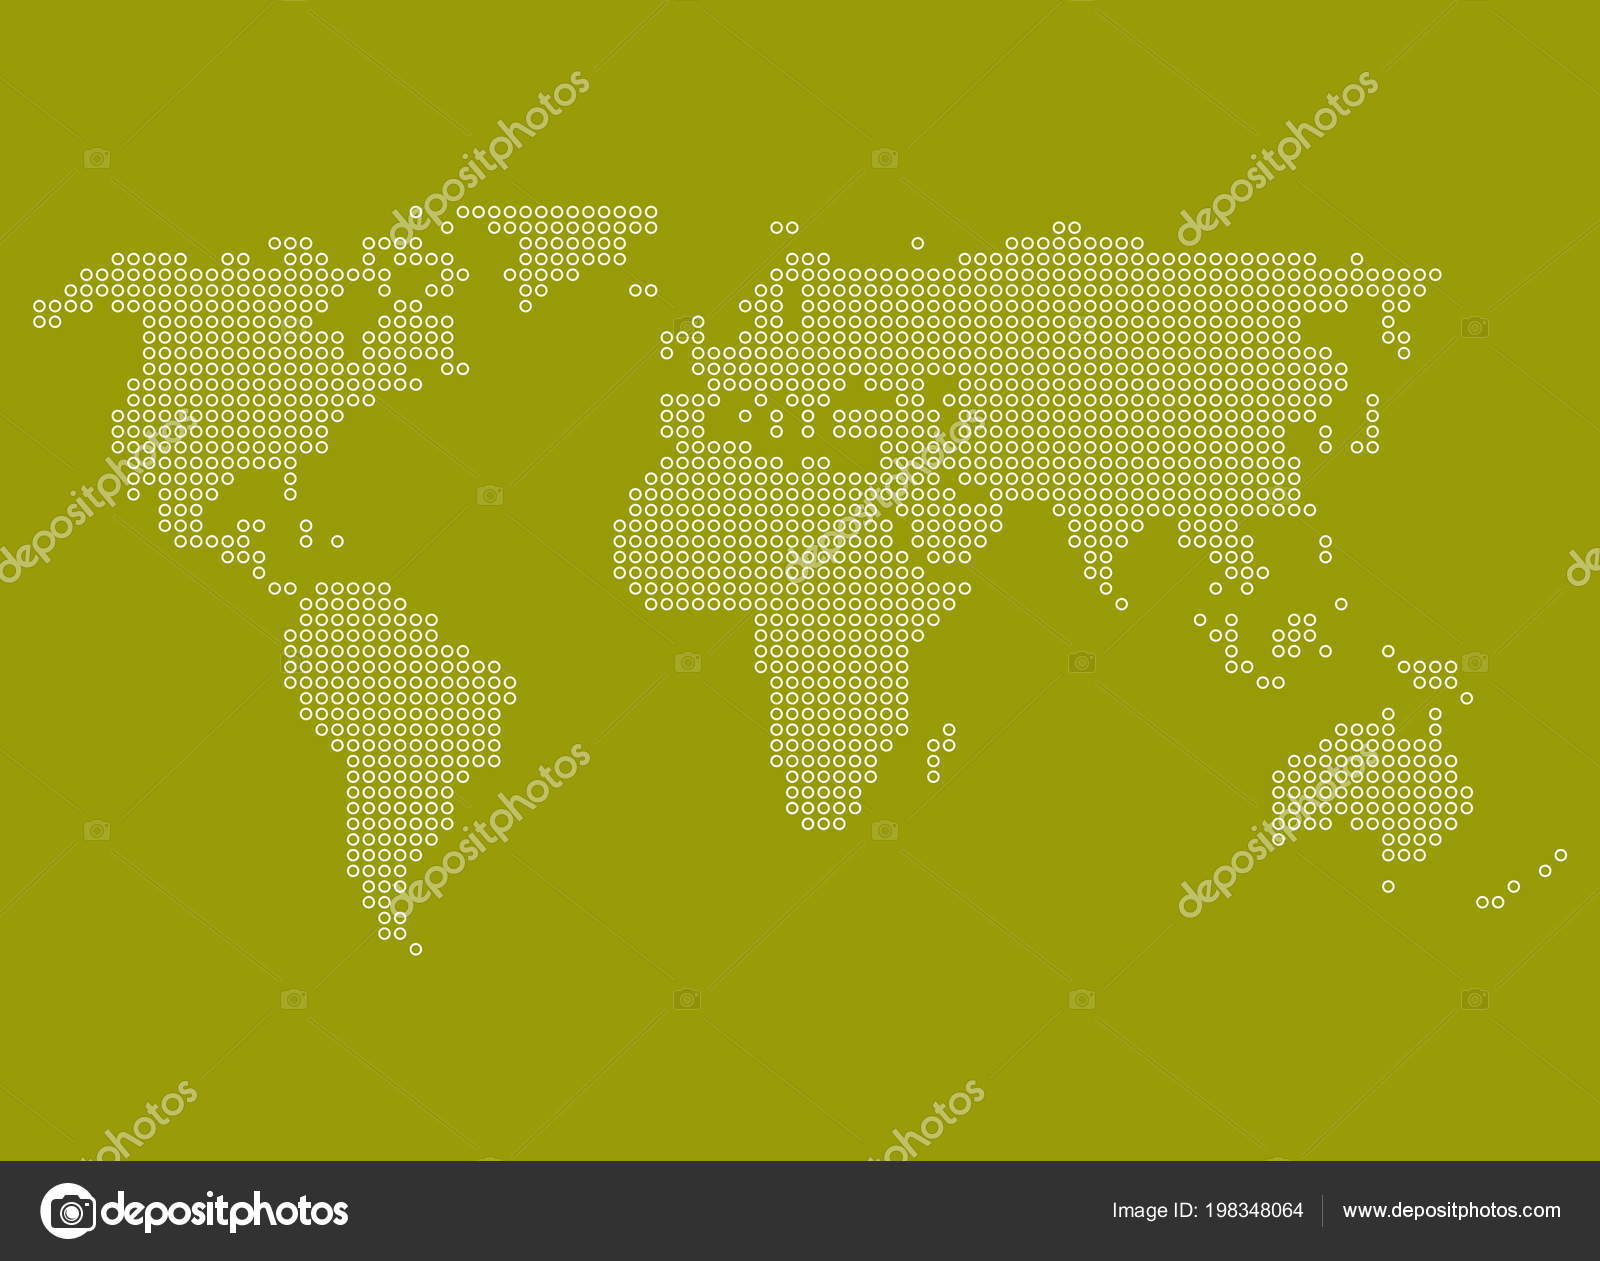 Simple world map white dots green yellow background stock photo simple world map white dots green yellow background stock photo gumiabroncs Image collections